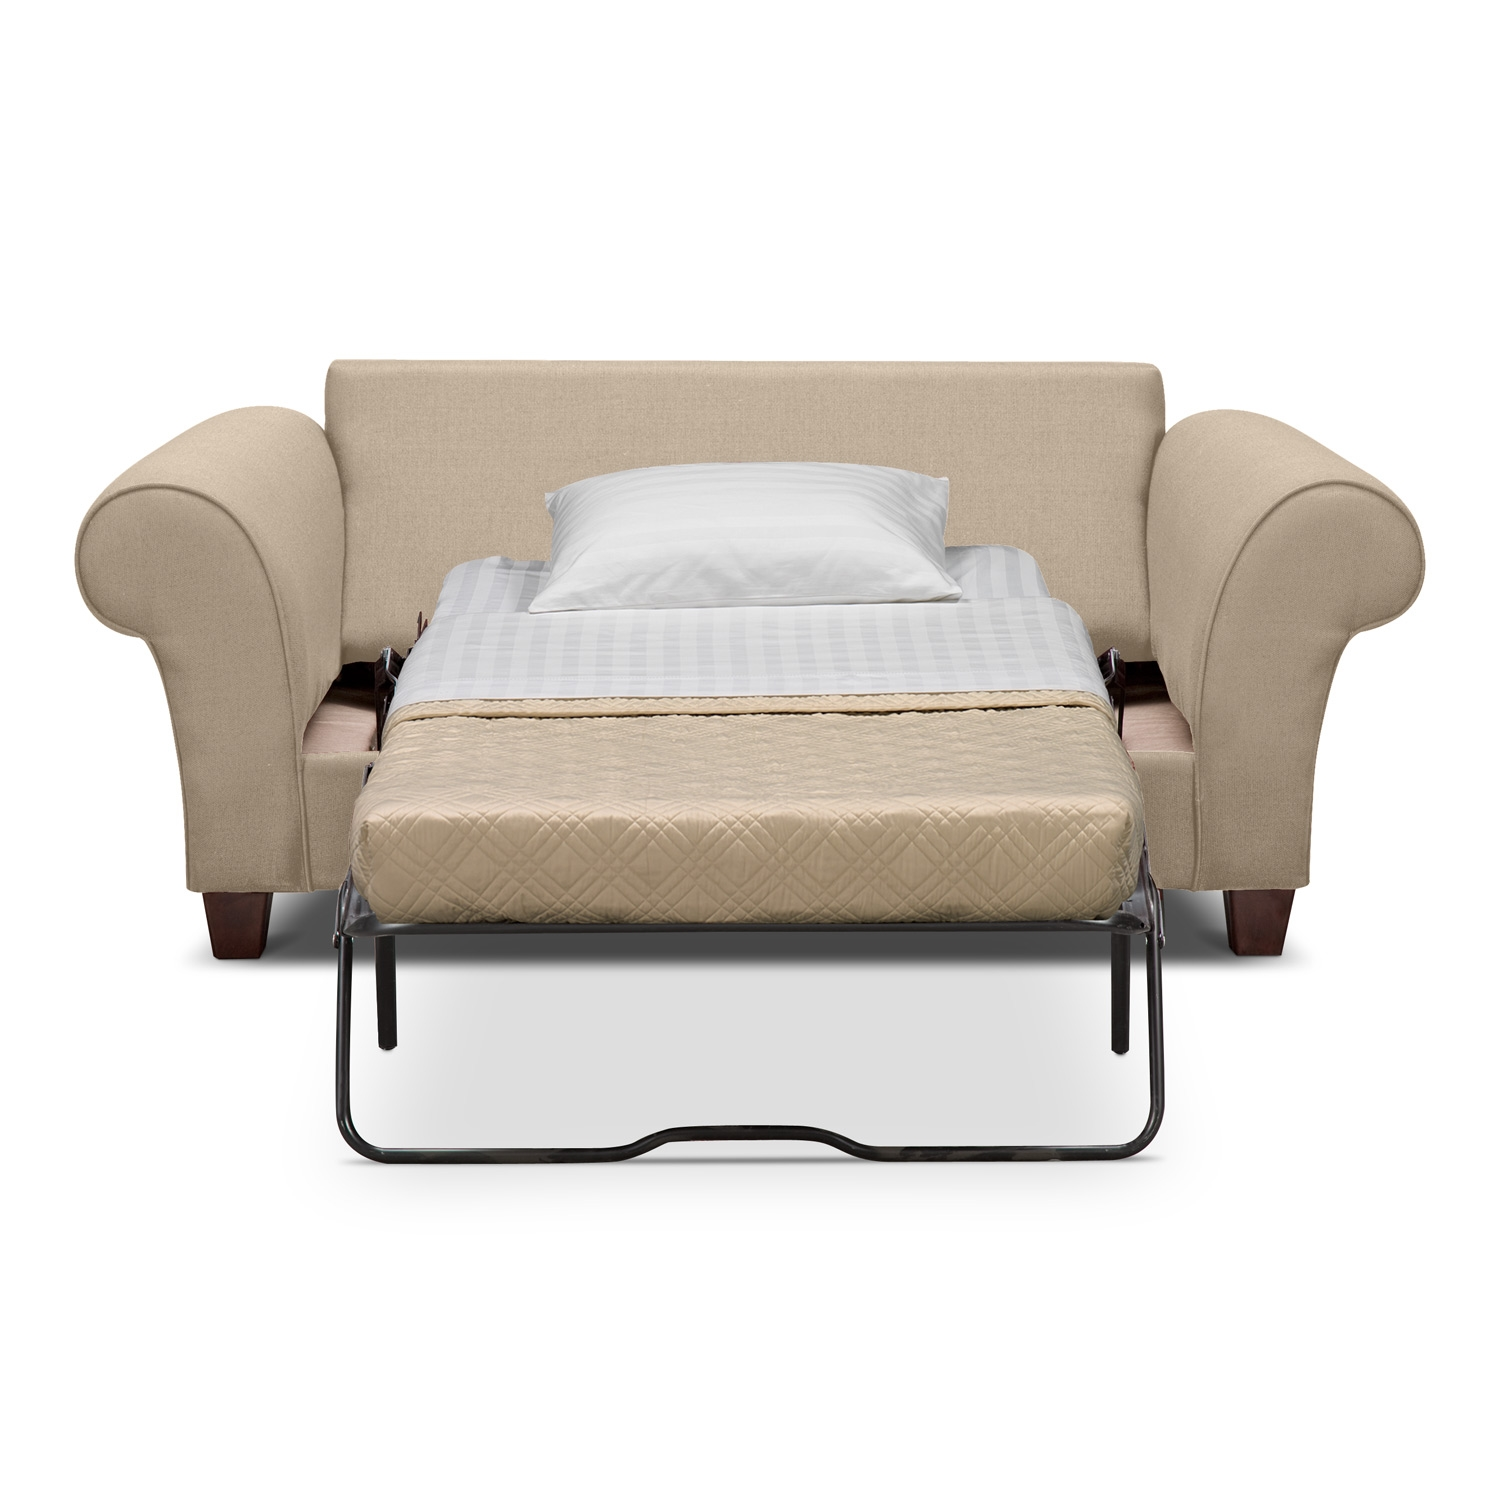 Image of: Unique Chair Bed Twin Sleeper